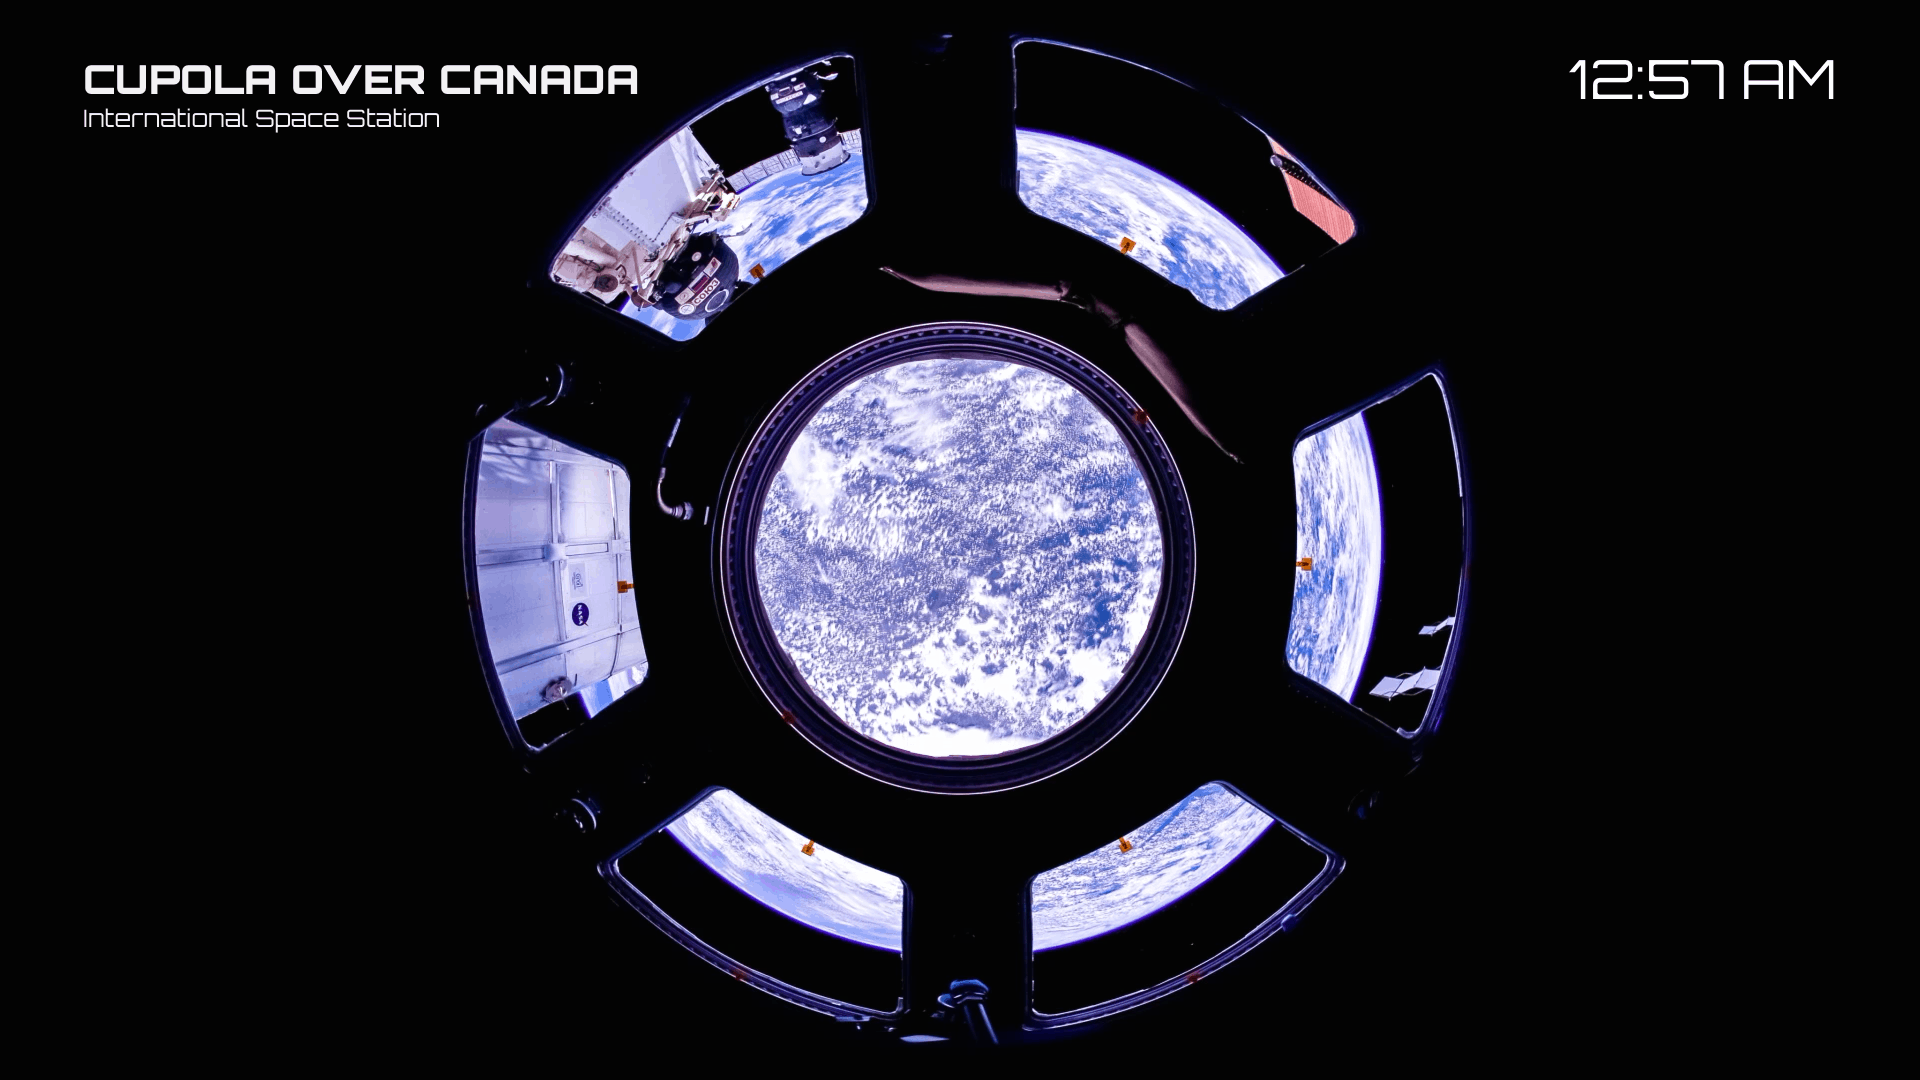 canada through the iss cupola window